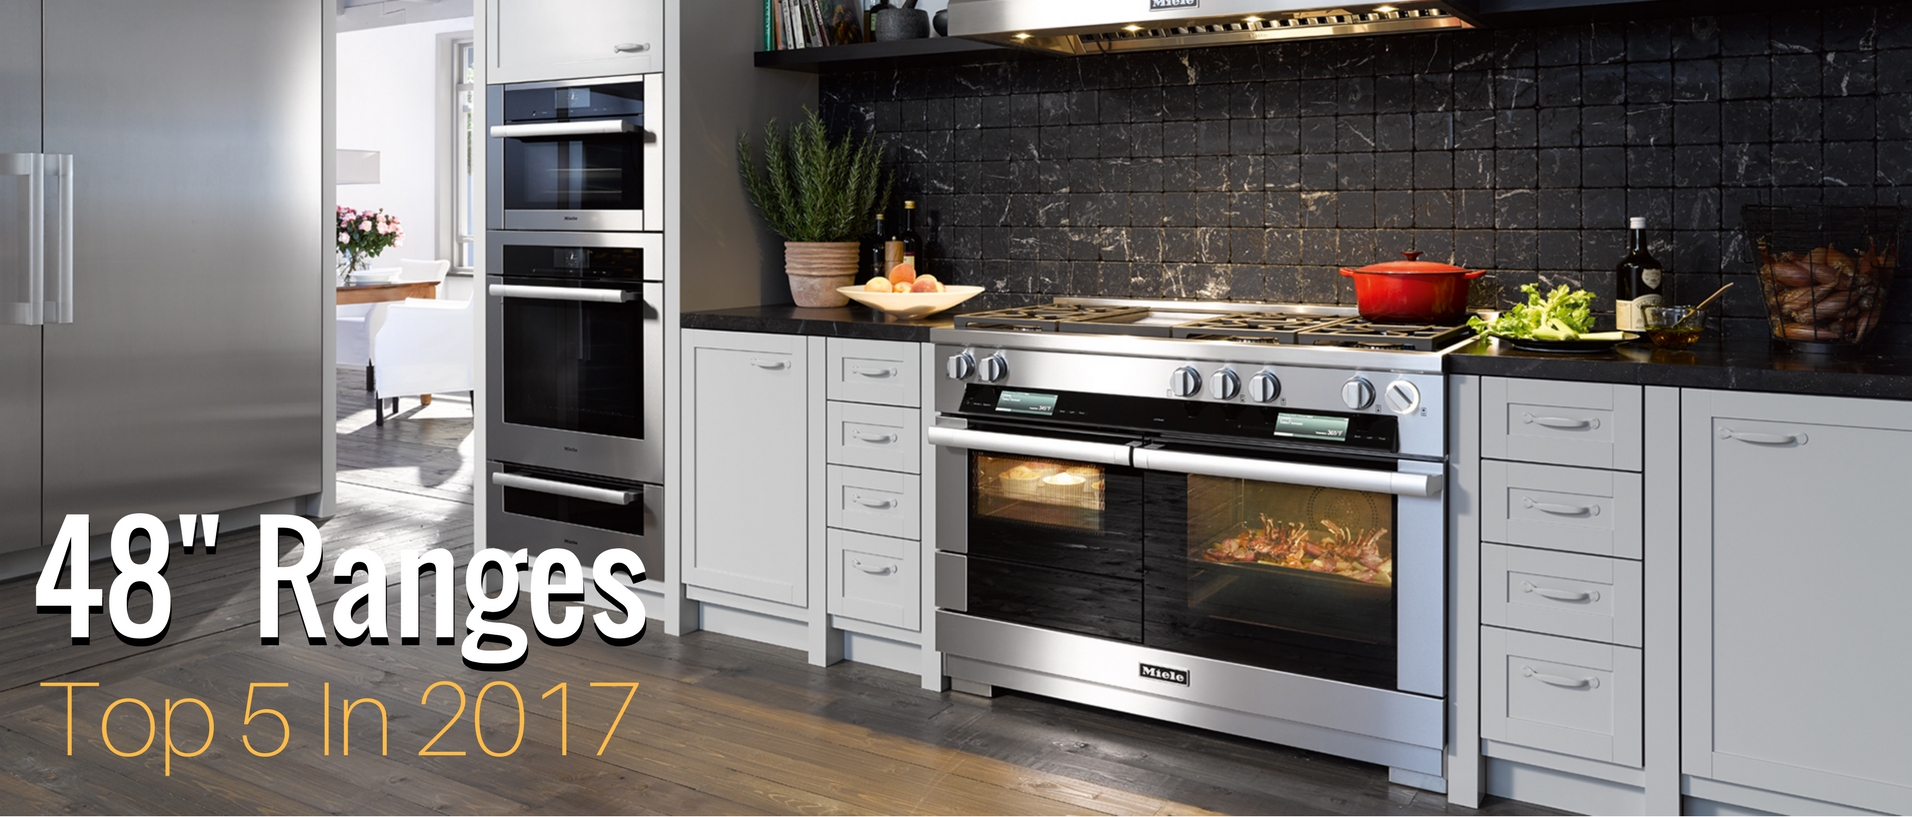 The 48 Range Is Cornerstone Of Any Modern Kitchen And There Are A Lot Options From Which To Choose Whether You Replacing An Older Oven Or Just